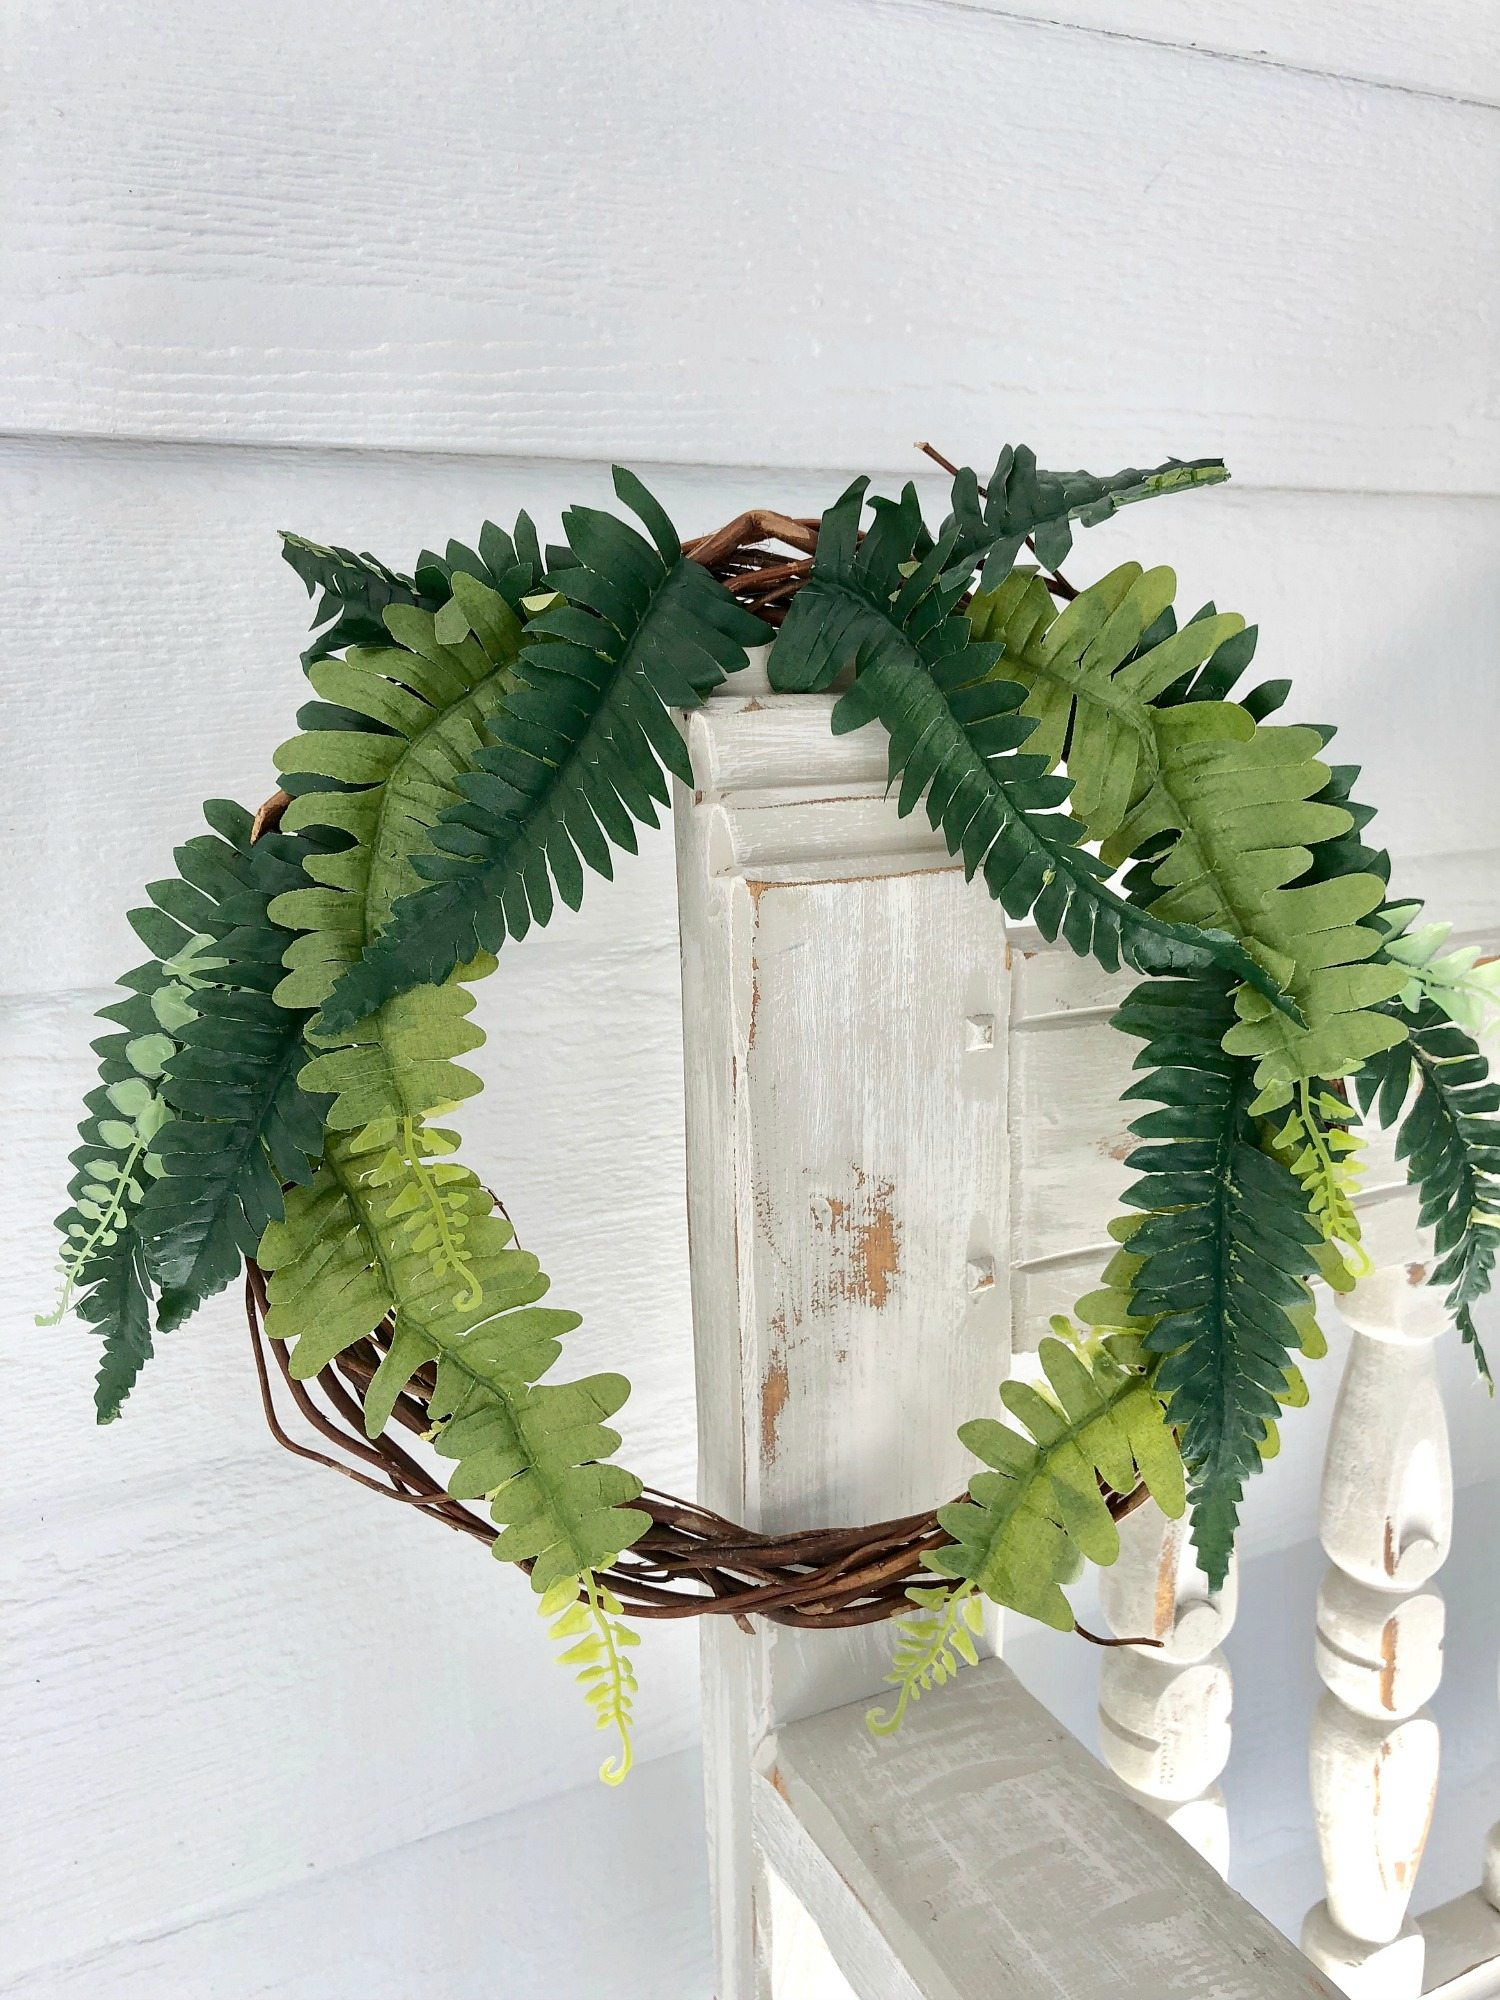 Fern wreath under 3 dollars